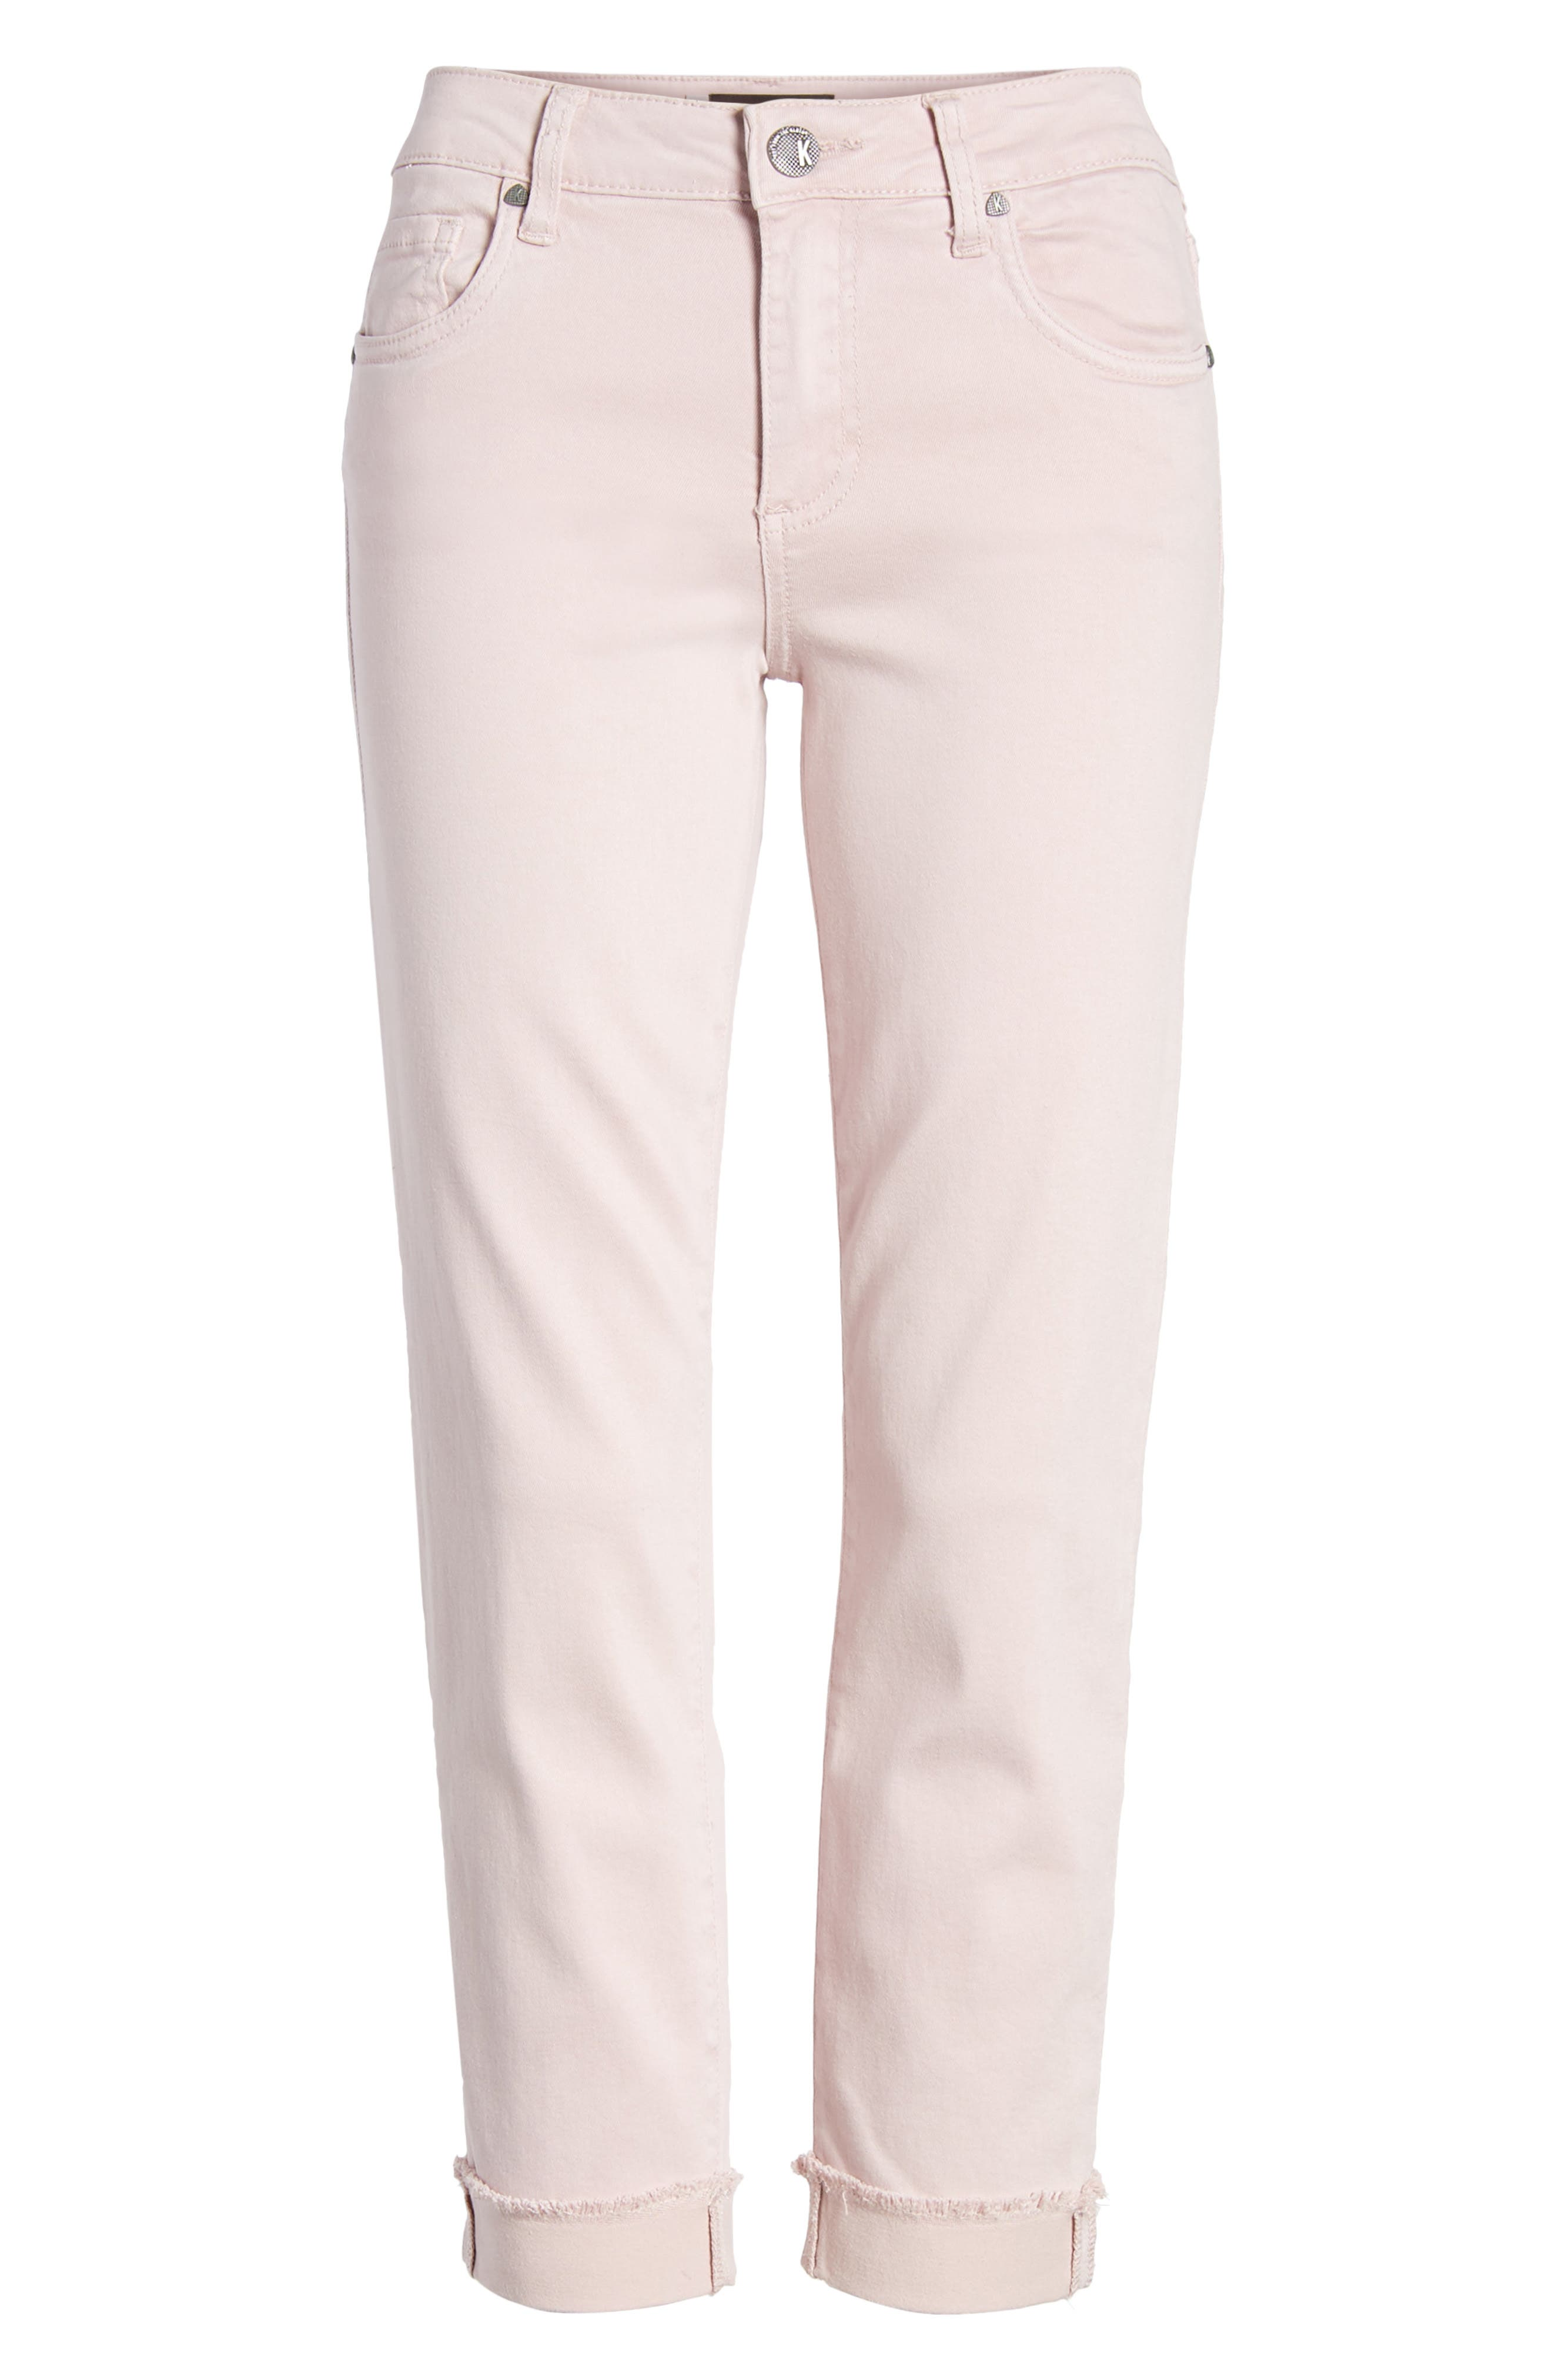 KUT from the Kloth Amy Crop Skinny Jeans,                             Alternate thumbnail 7, color,                             Rose